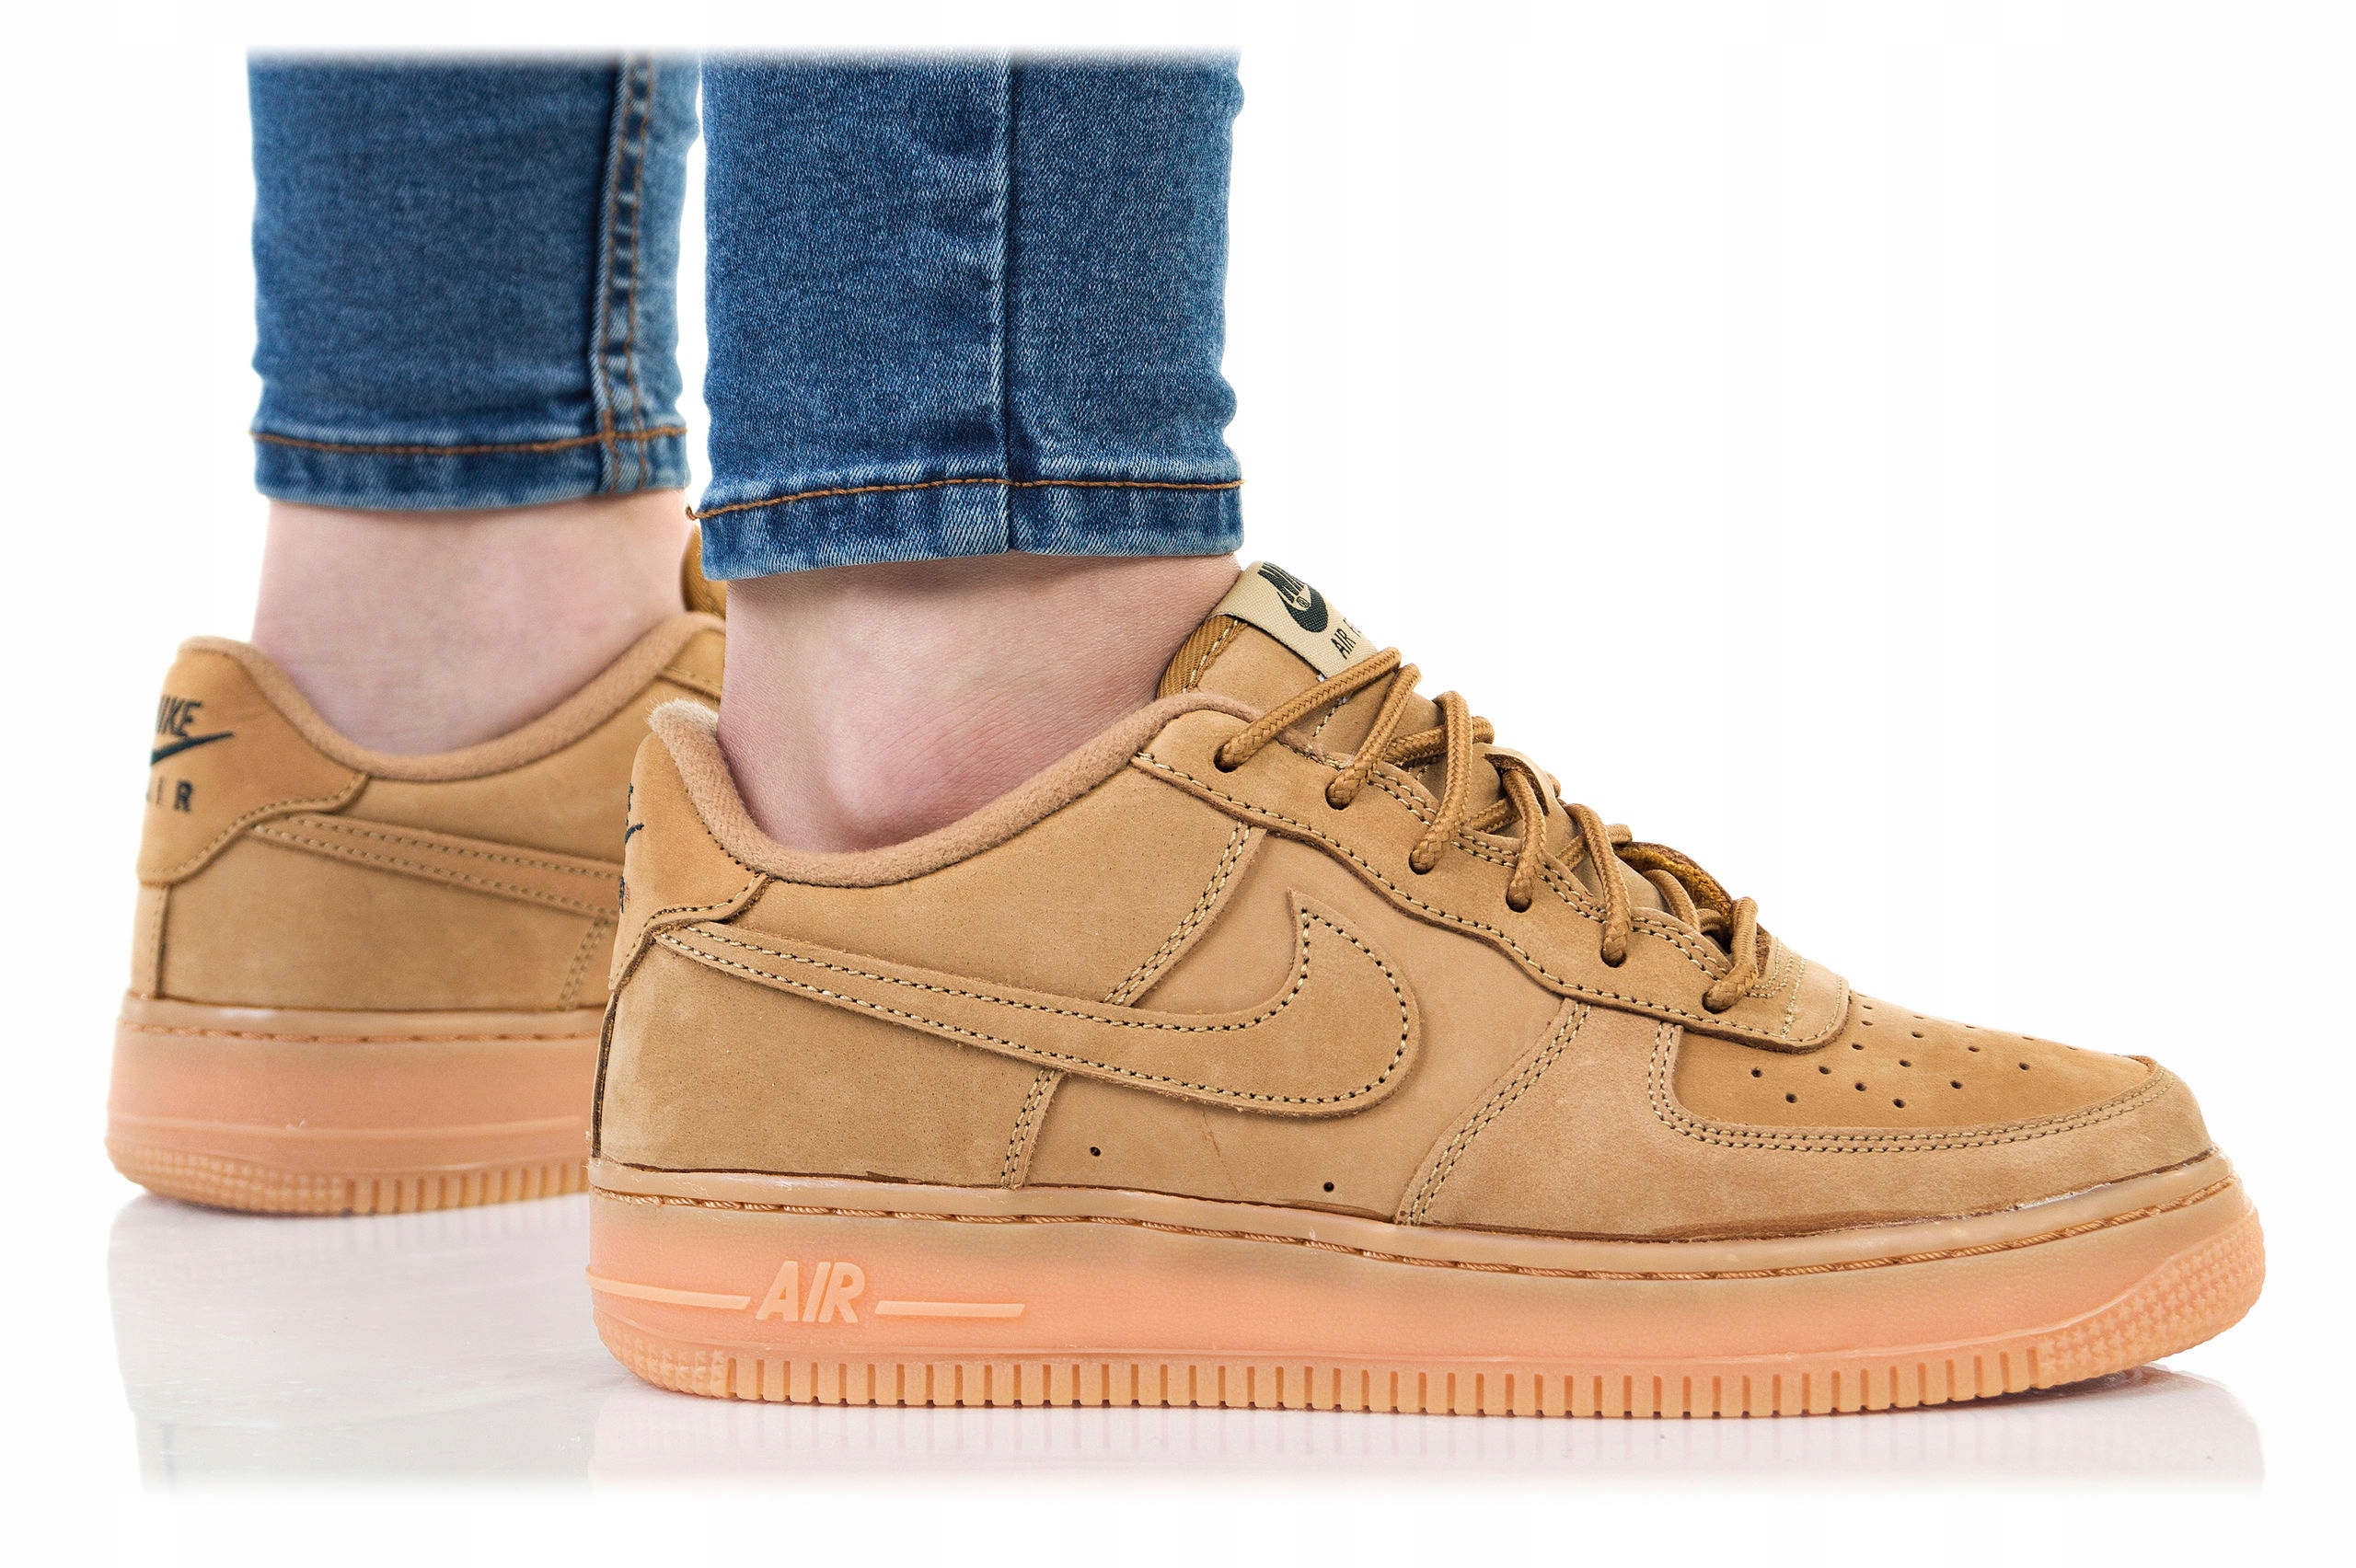 3c830a36a BUTY NIKE AIR FORCE 1 WINTER PRM 943312-200 - 7657802685 - oficjalne ...